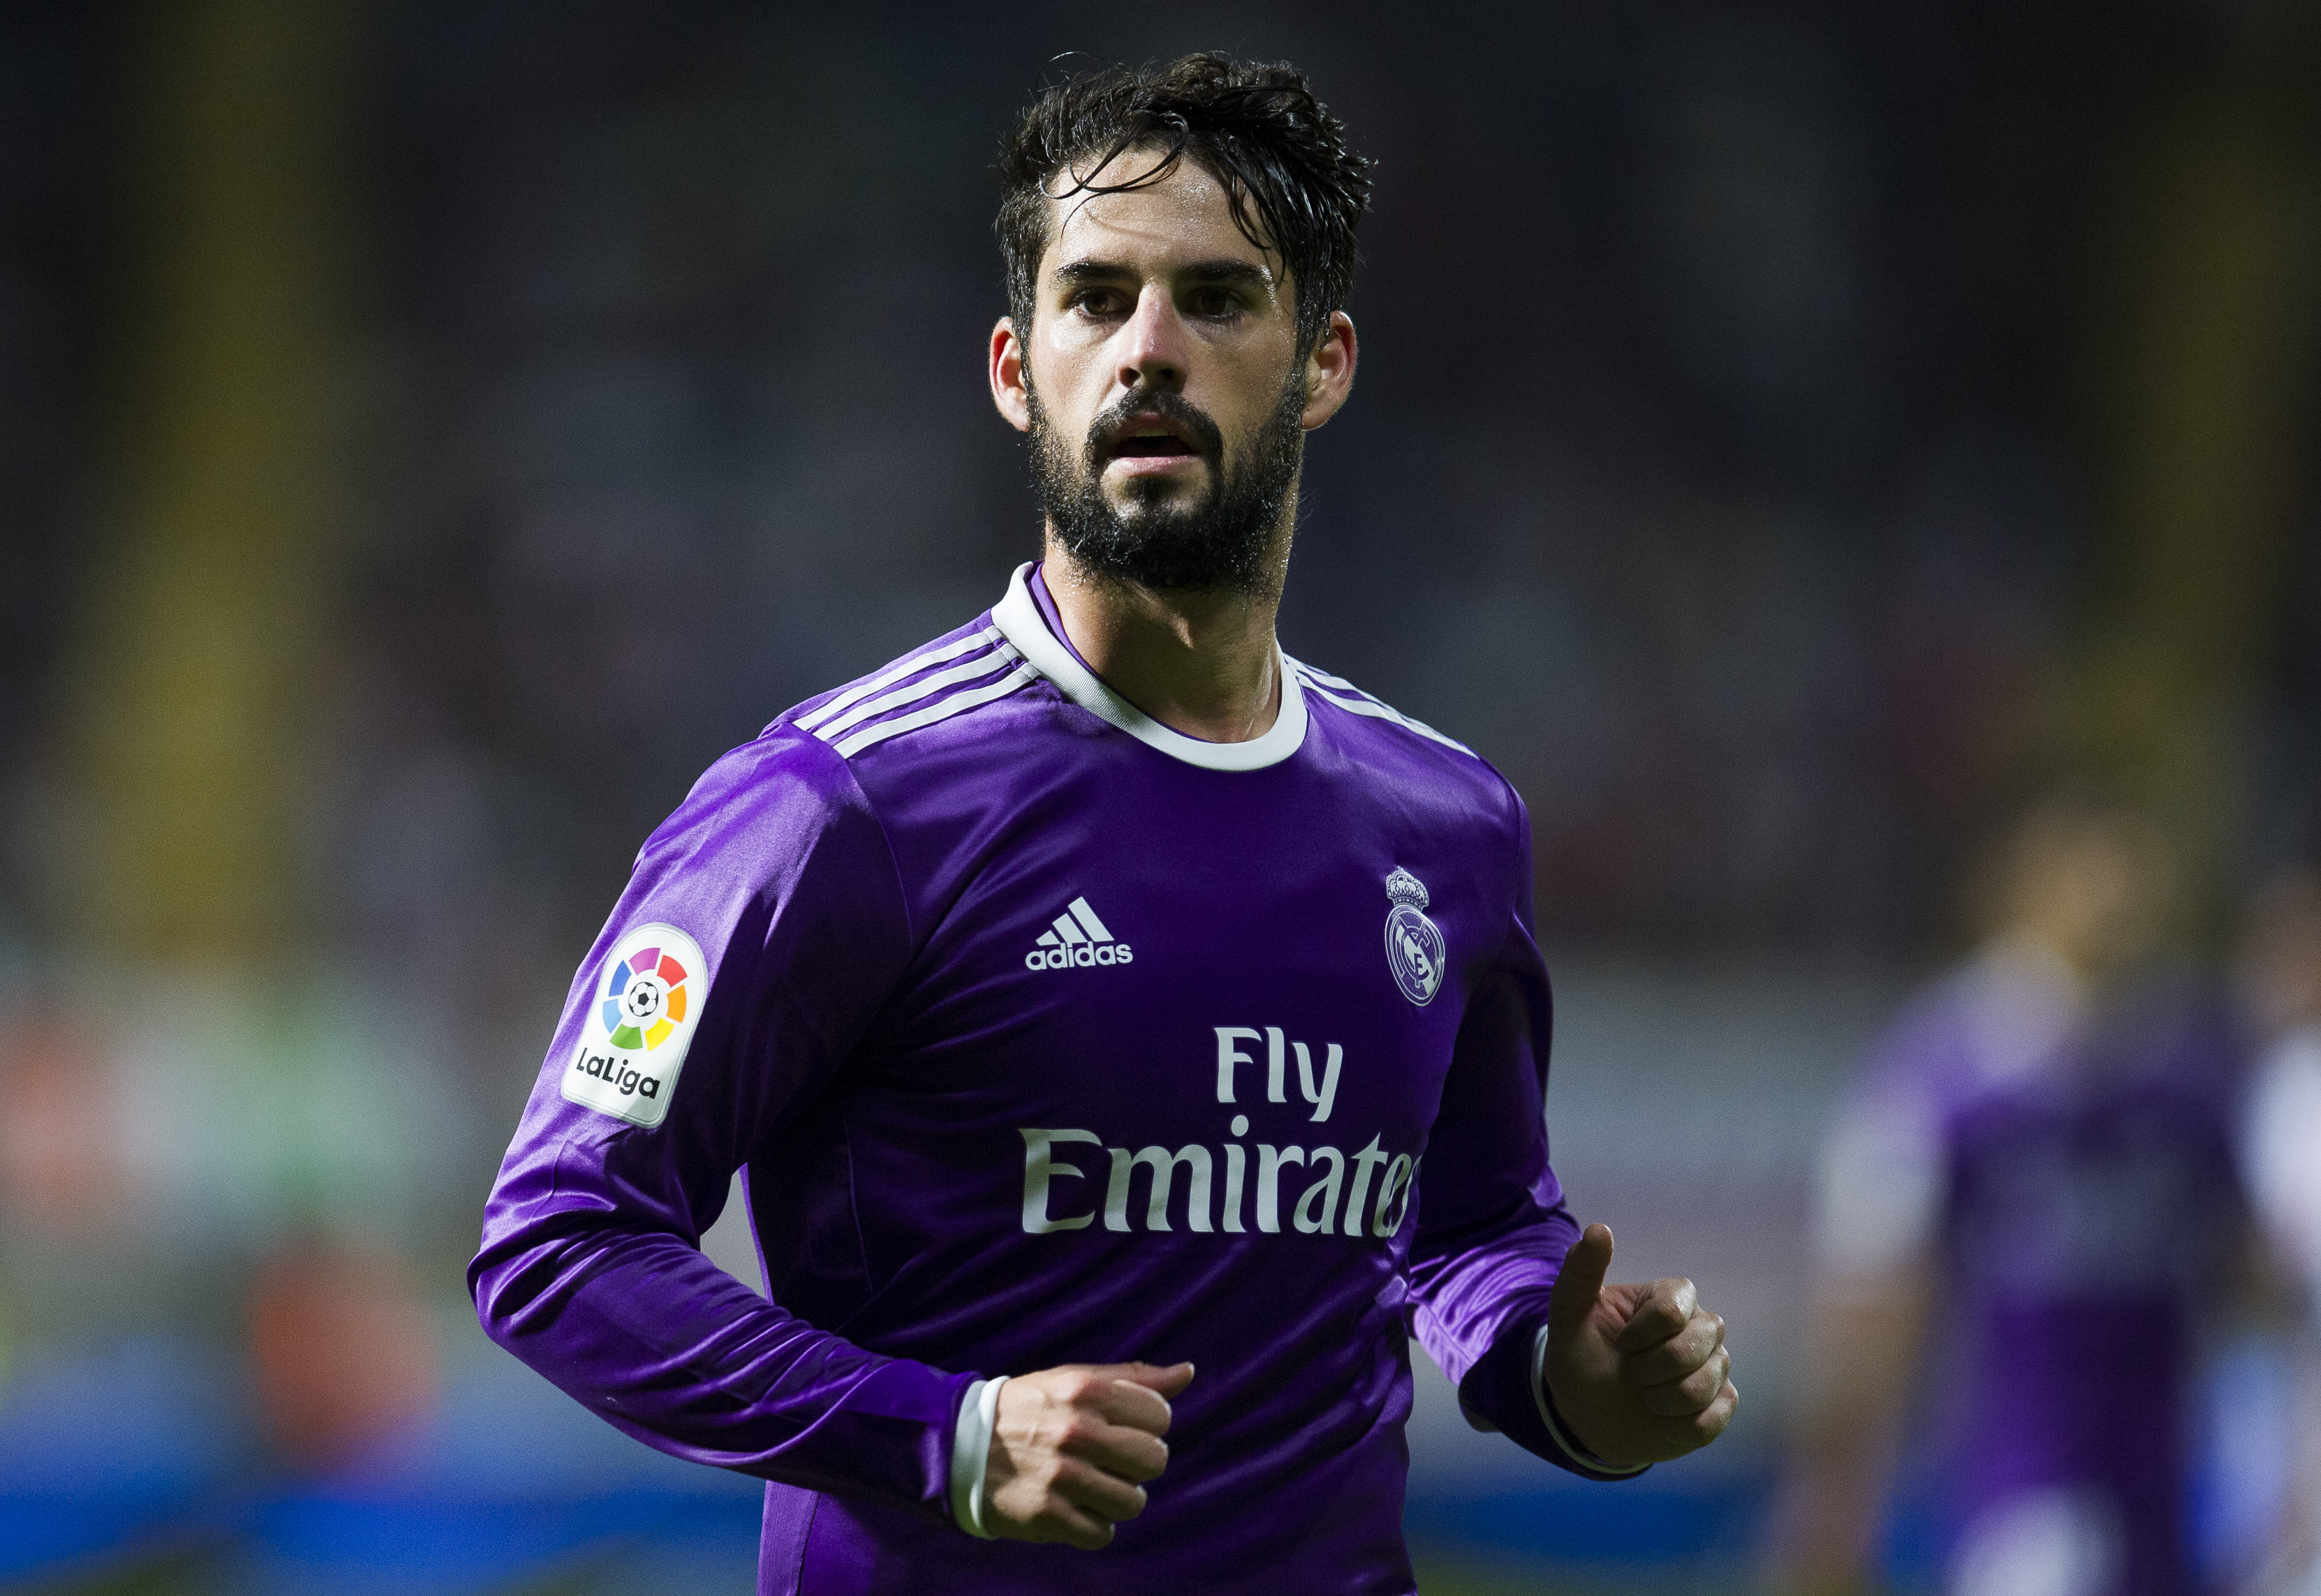 LEON, SPAIN - OCTOBER 26: Isco of Real Madrid reacts during the Copa del Rey Round of 32 match between Cultural Leonesa and Real Madrid CF at Reino de Leon Stadium on October 26, 2016 in Leon, Spain. (Photo by Juan Manuel Serrano Arce/Getty Images)